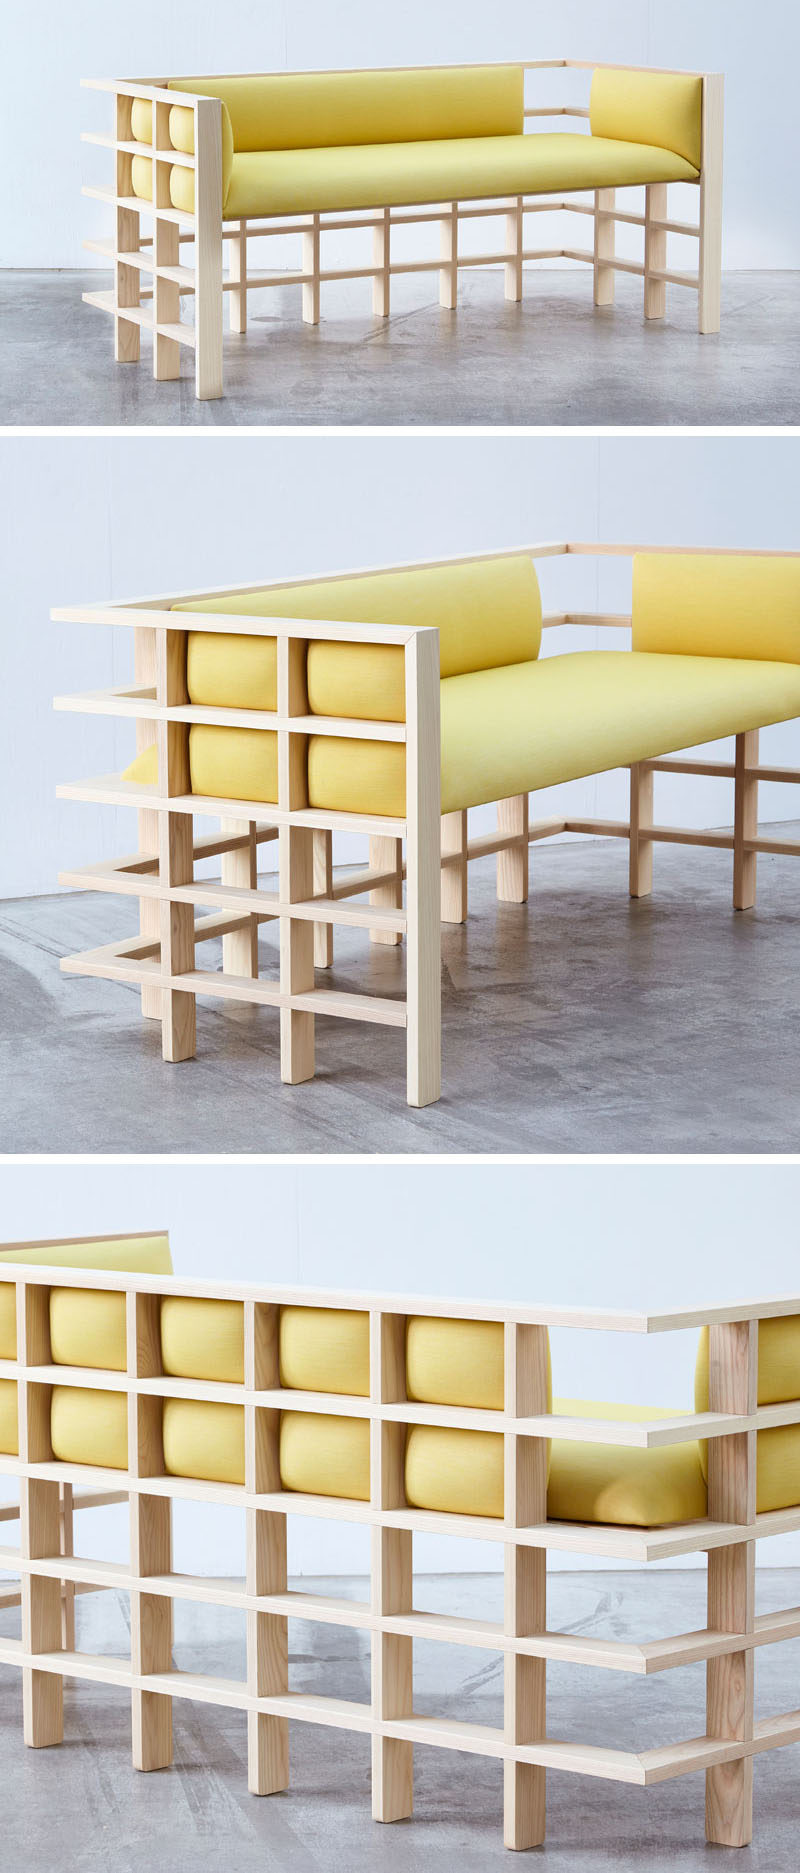 Australian based designer Elliot Bastianon, has created a new modern furniture collection named 'Straight Lines'. #ModernFurniture #Design #Couch #Wood